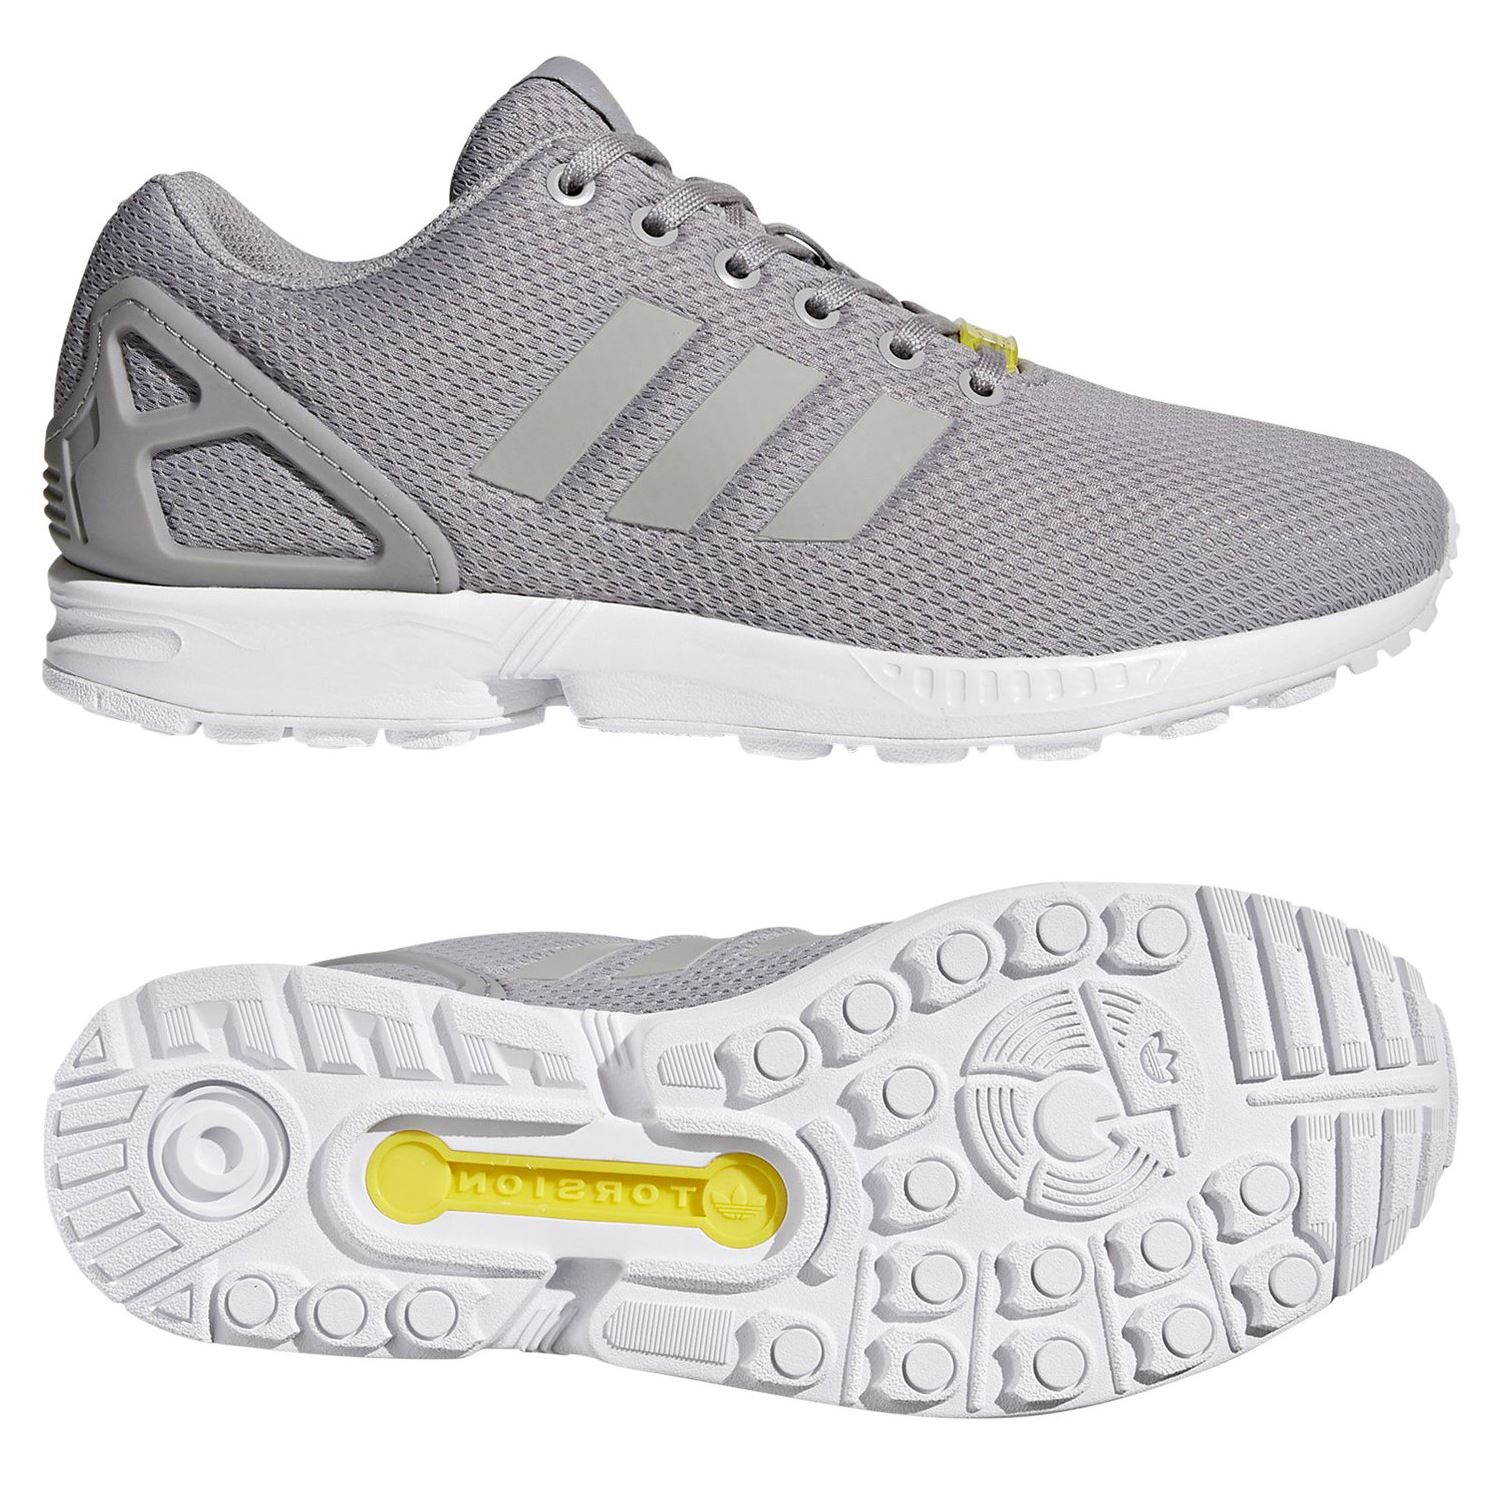 fc652de0b2a2d Details about adidas ORIGINALS MEN S ZX FLUX TRAINERS GREY SNEAKERS SHOES  RETRO 3 STRIPES